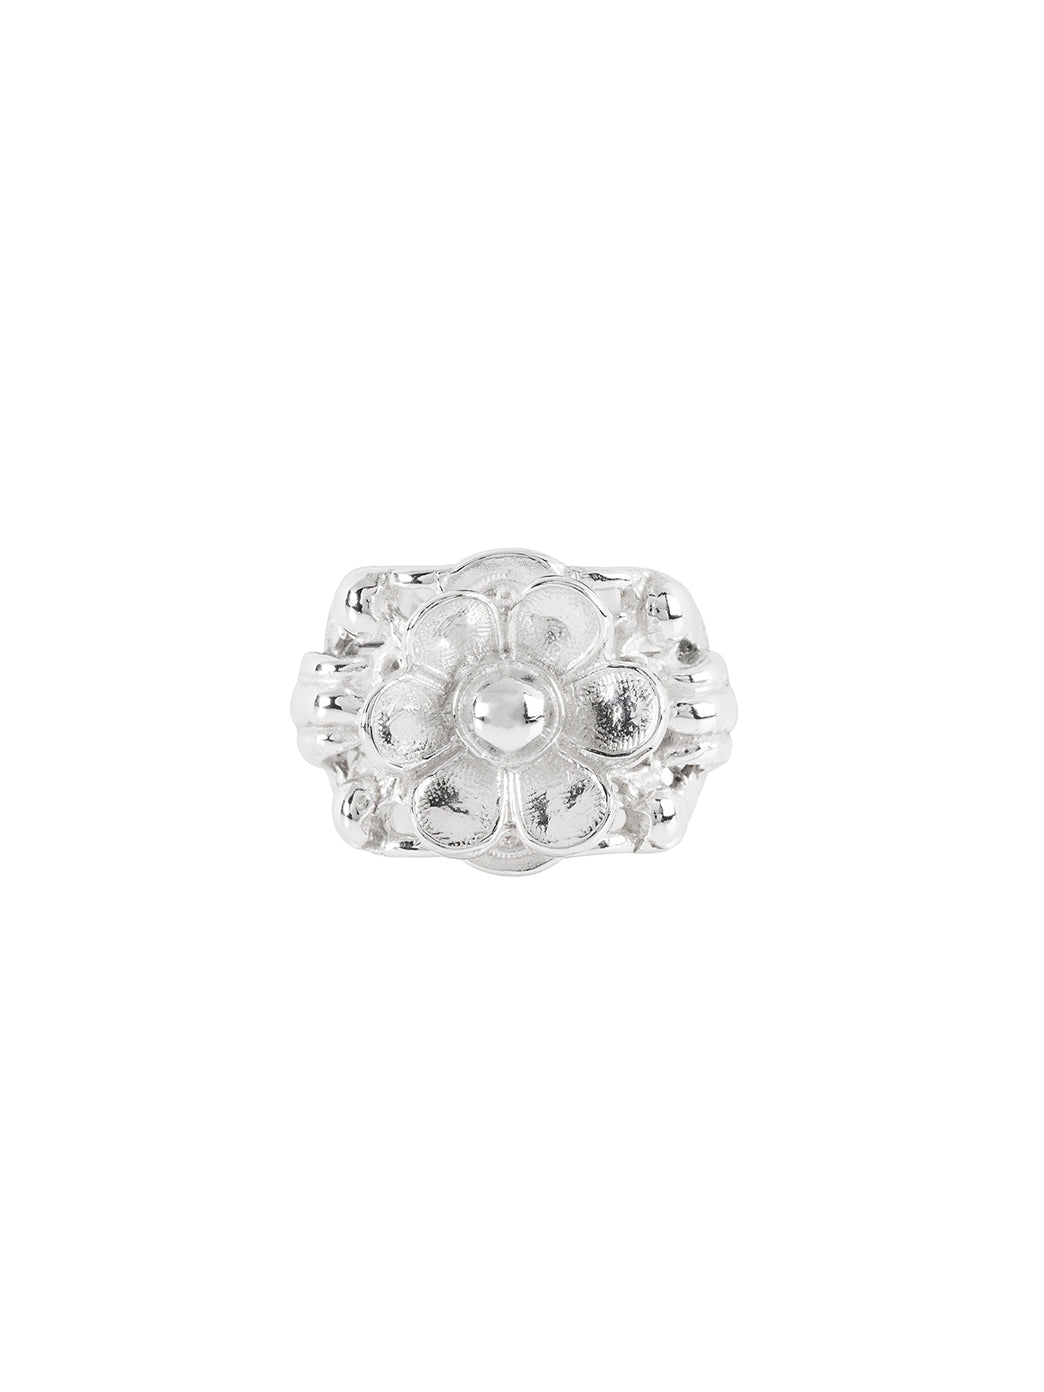 Fiorina Jewellery Garden Ring